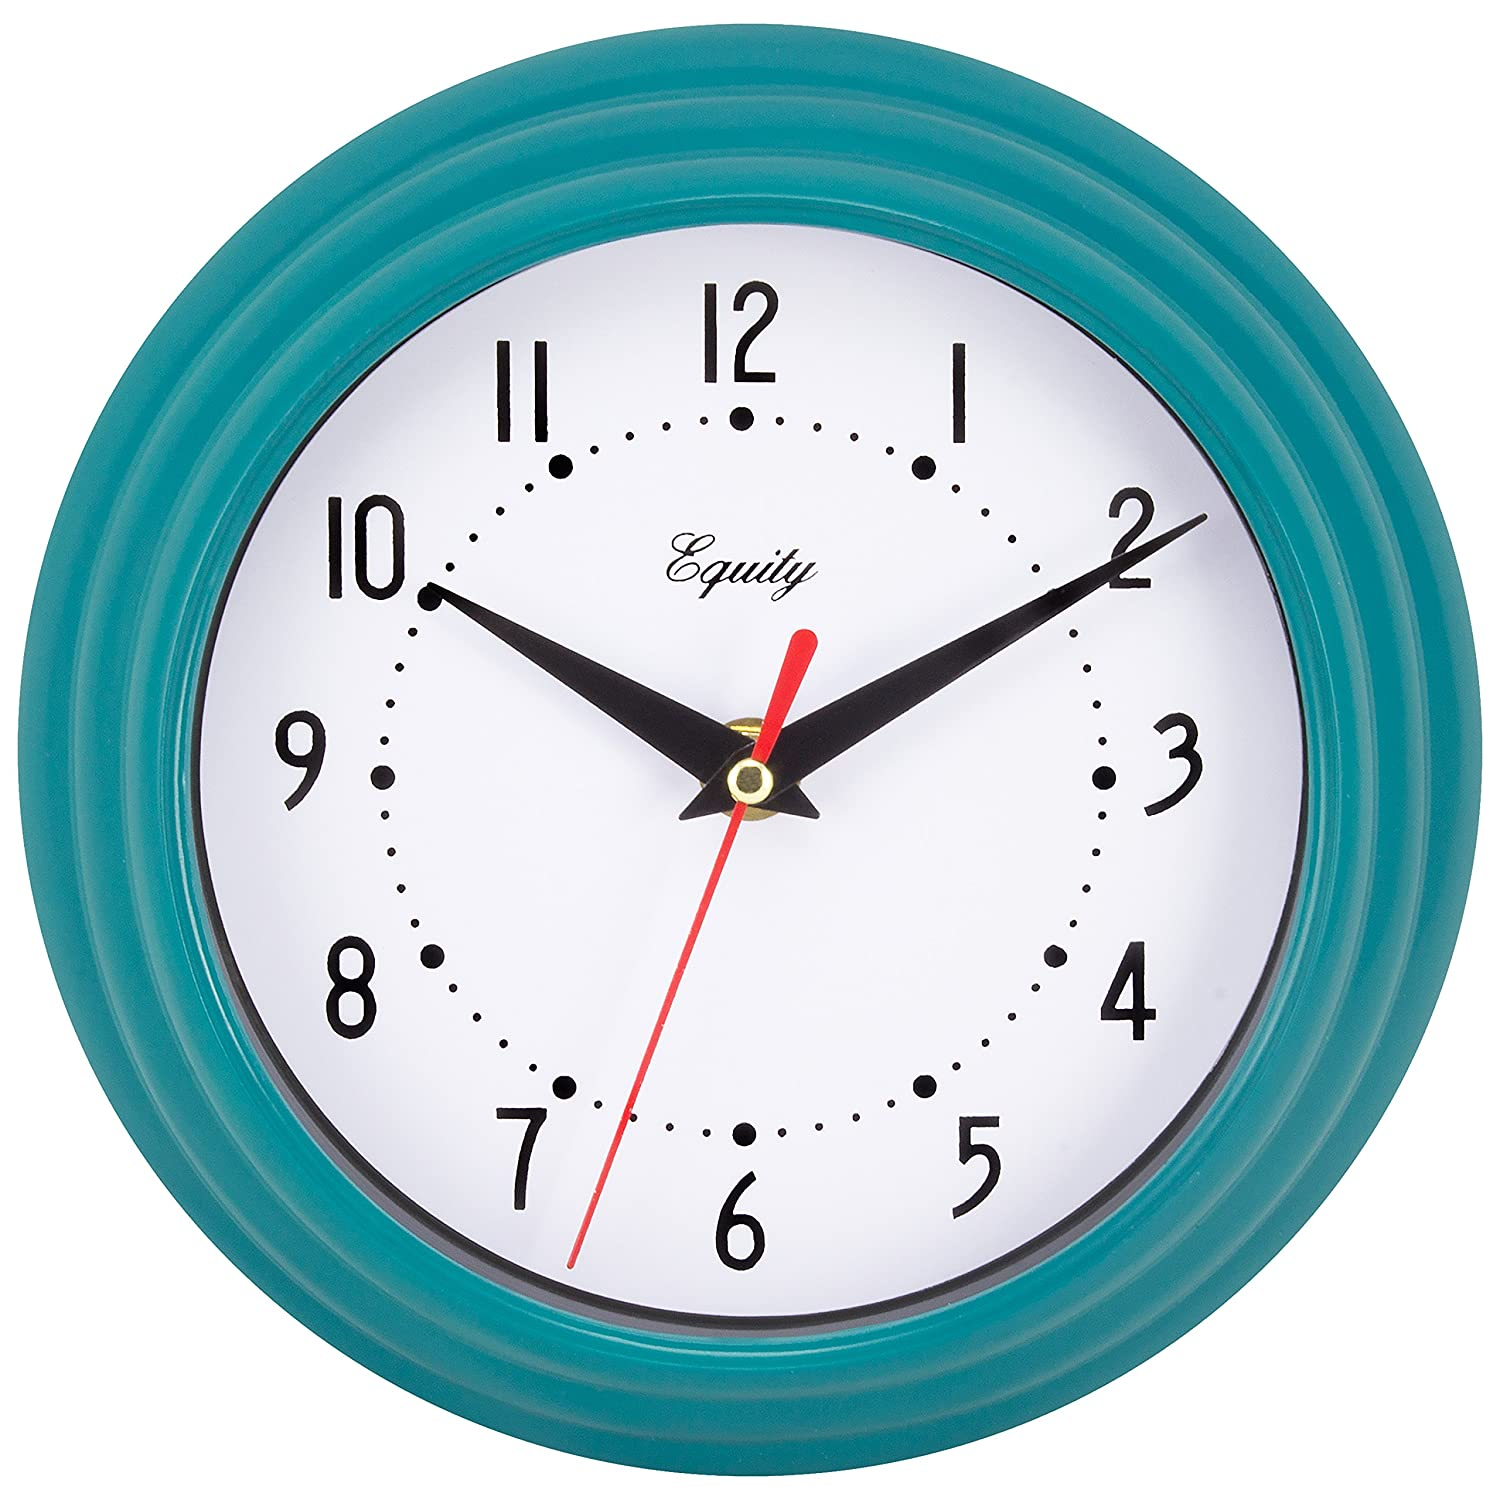 Amazon equity by la crosse 25020 analog wall clock teal blue amazon equity by la crosse 25020 analog wall clock teal blue 8 home kitchen amipublicfo Image collections